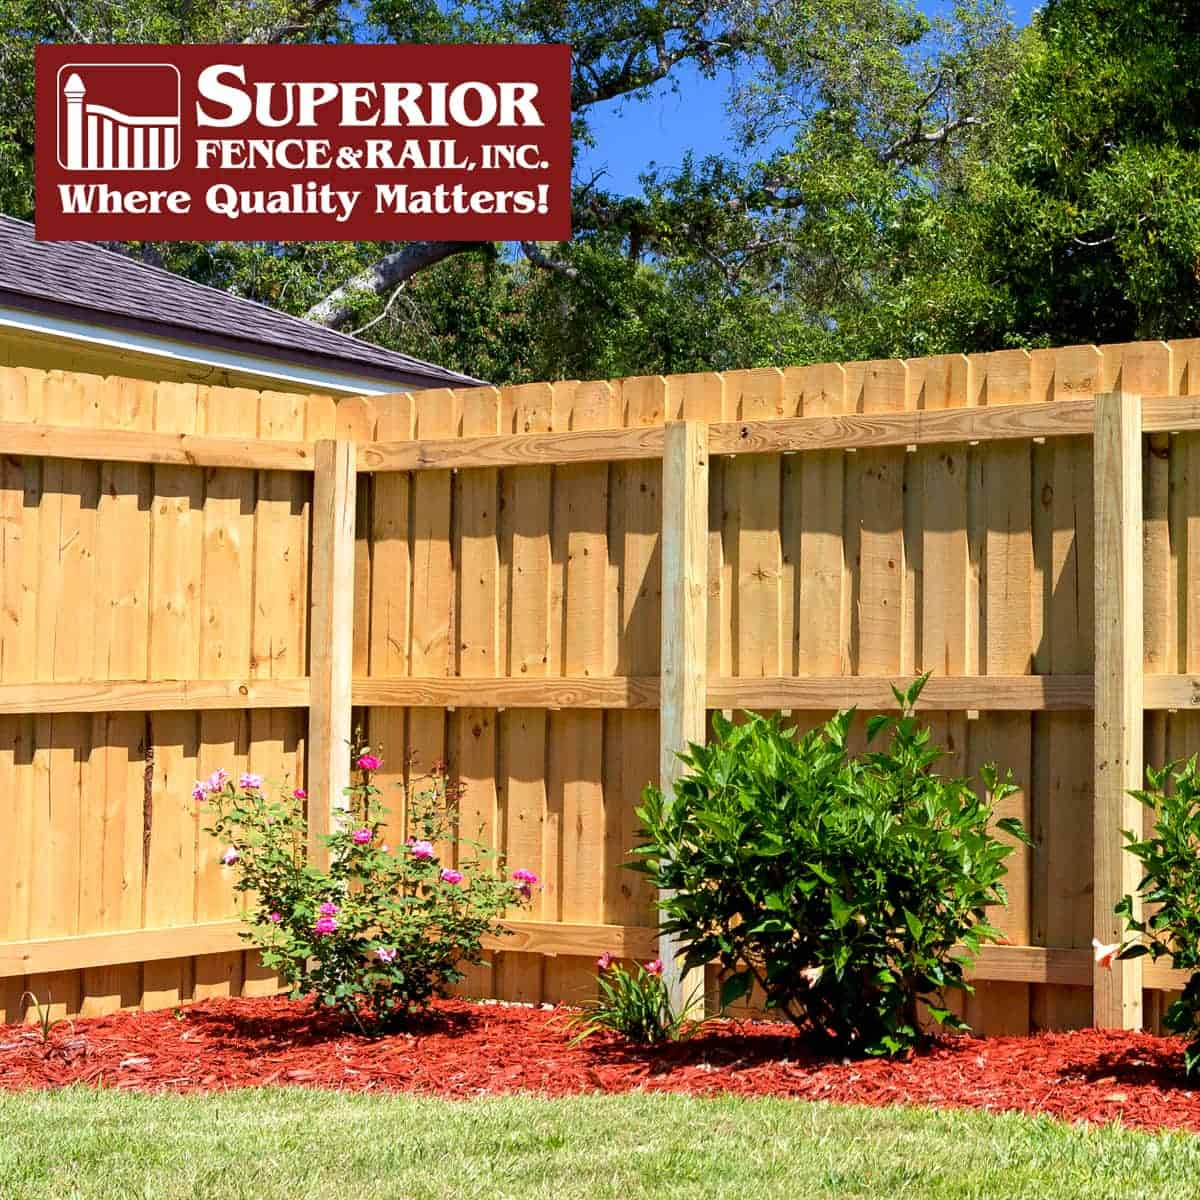 Westminster fence company contractor